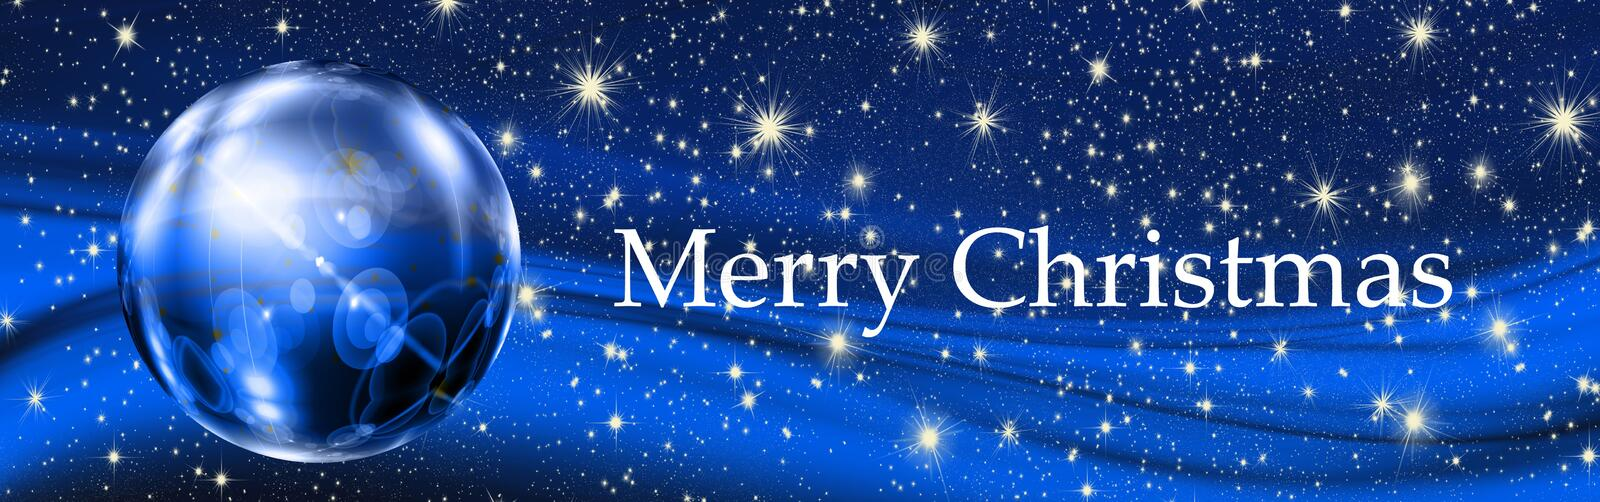 Merry Christmas decorative ball and stars, background royalty free stock image